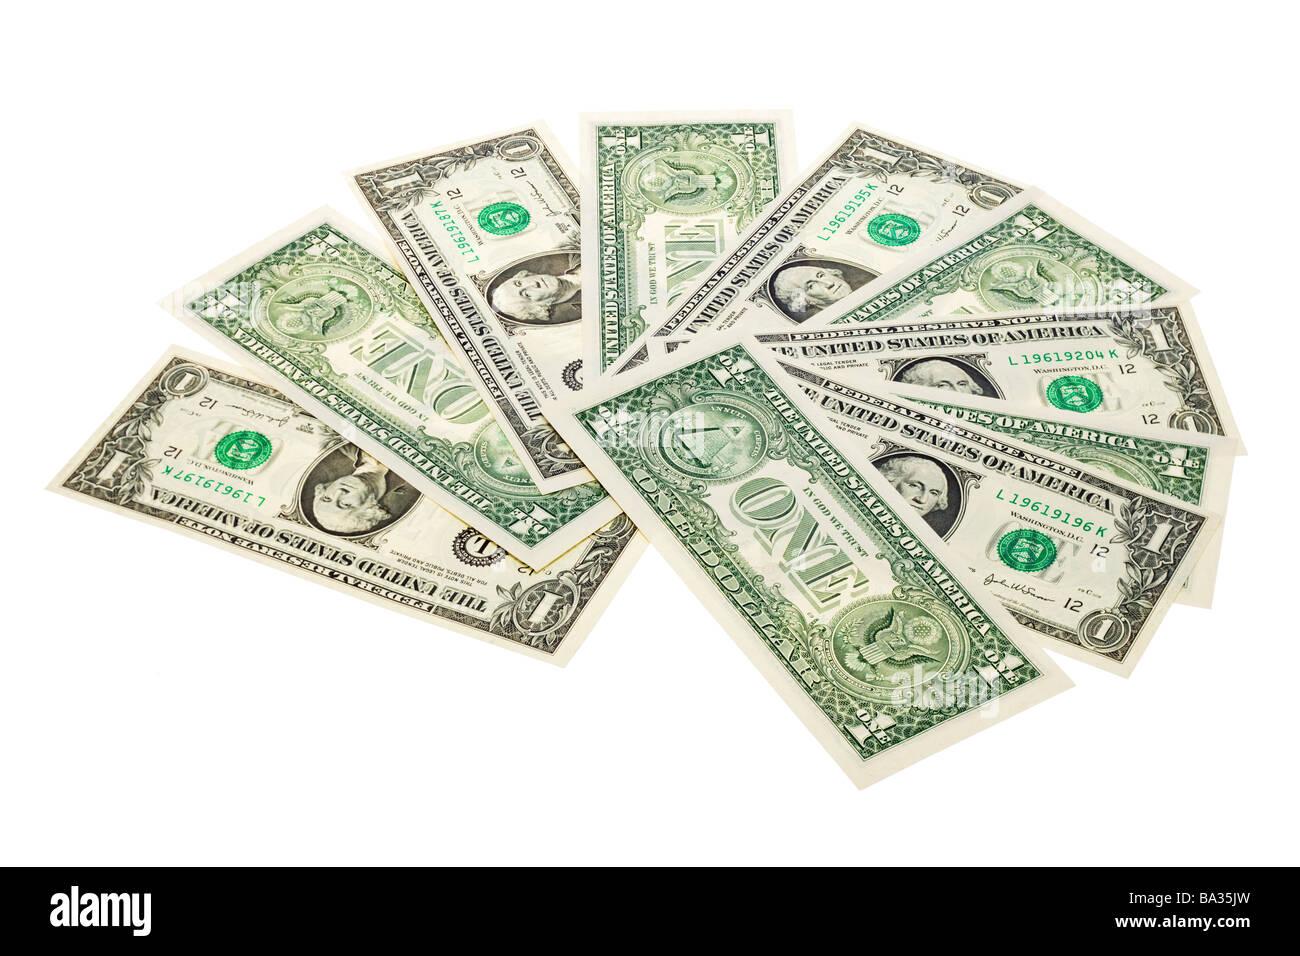 Group of US One Dollar bills arranged in a fan - Stock Image